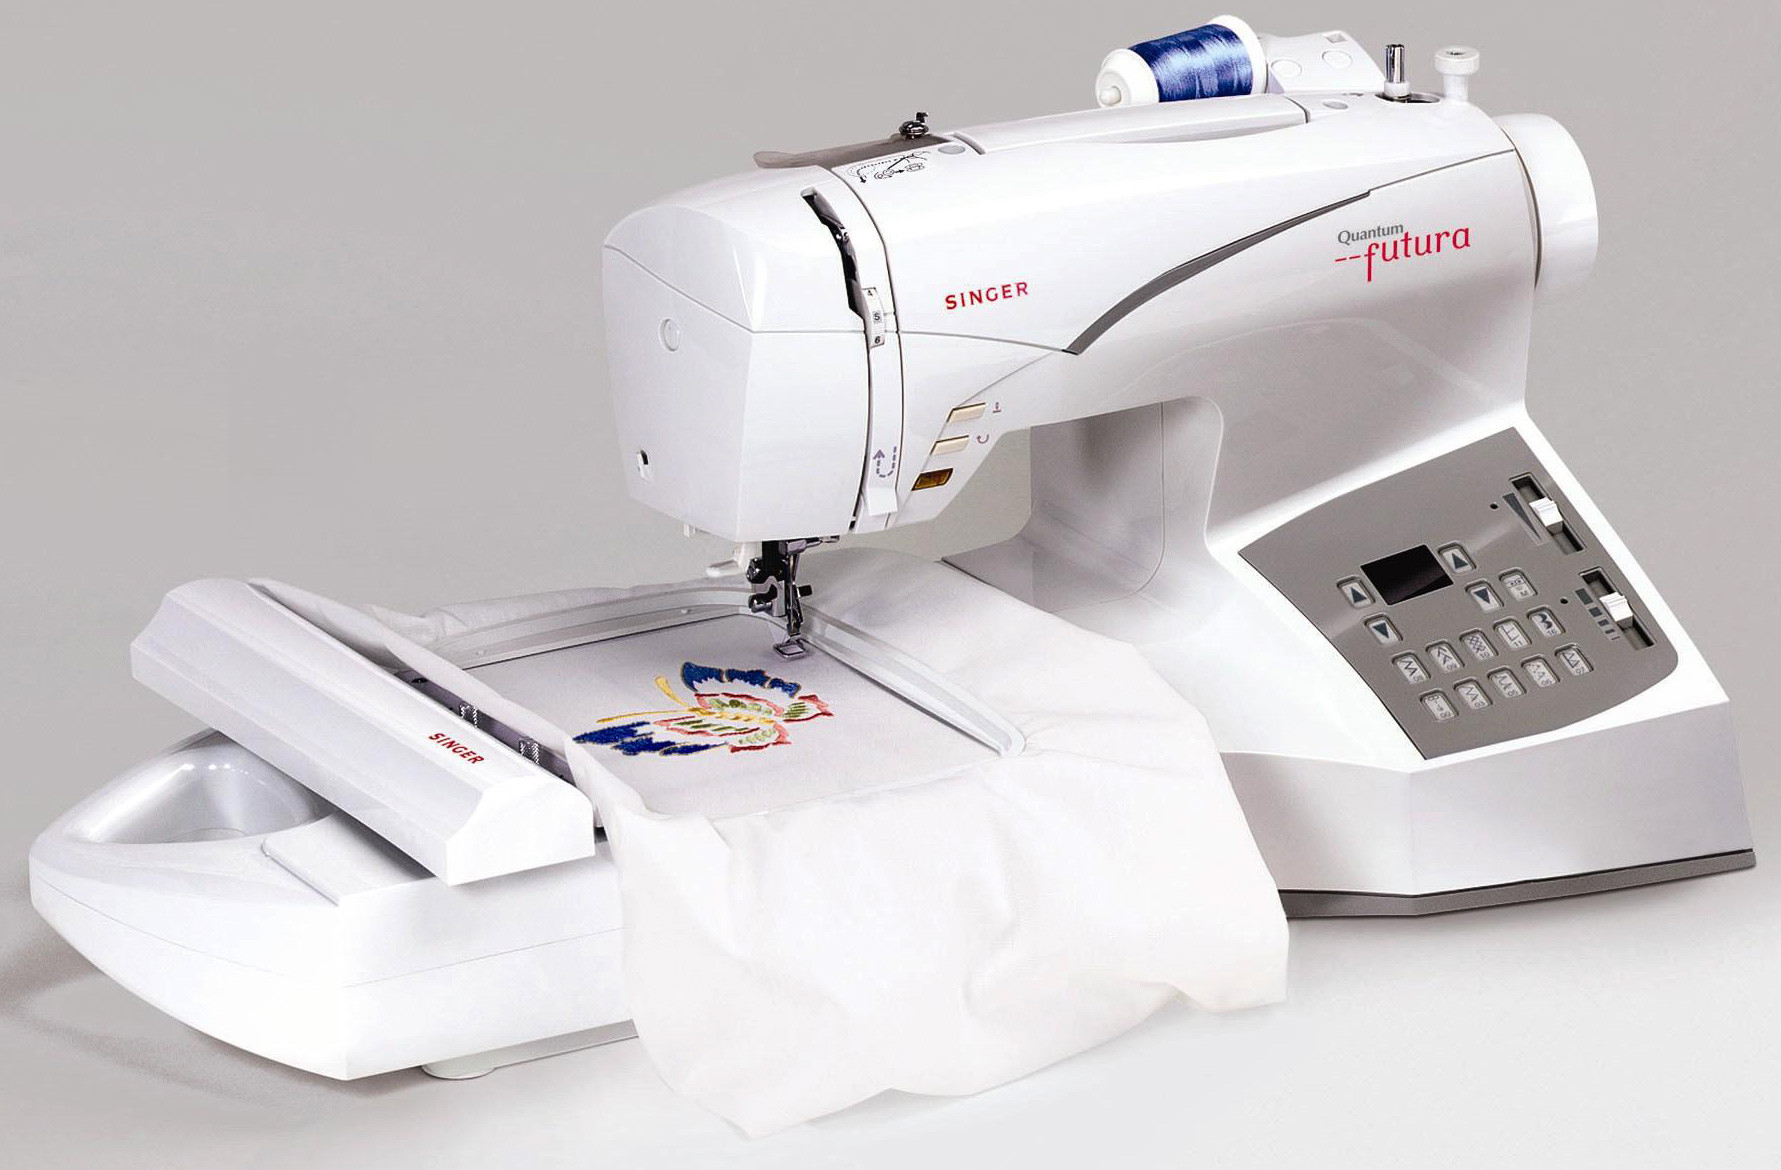 Embroidery Sewing Machine Beautiful Singer Quantum Futura Ce 200 Embroidery Sewing Machine Fs Of Wonderful 40 Images Embroidery Sewing Machine